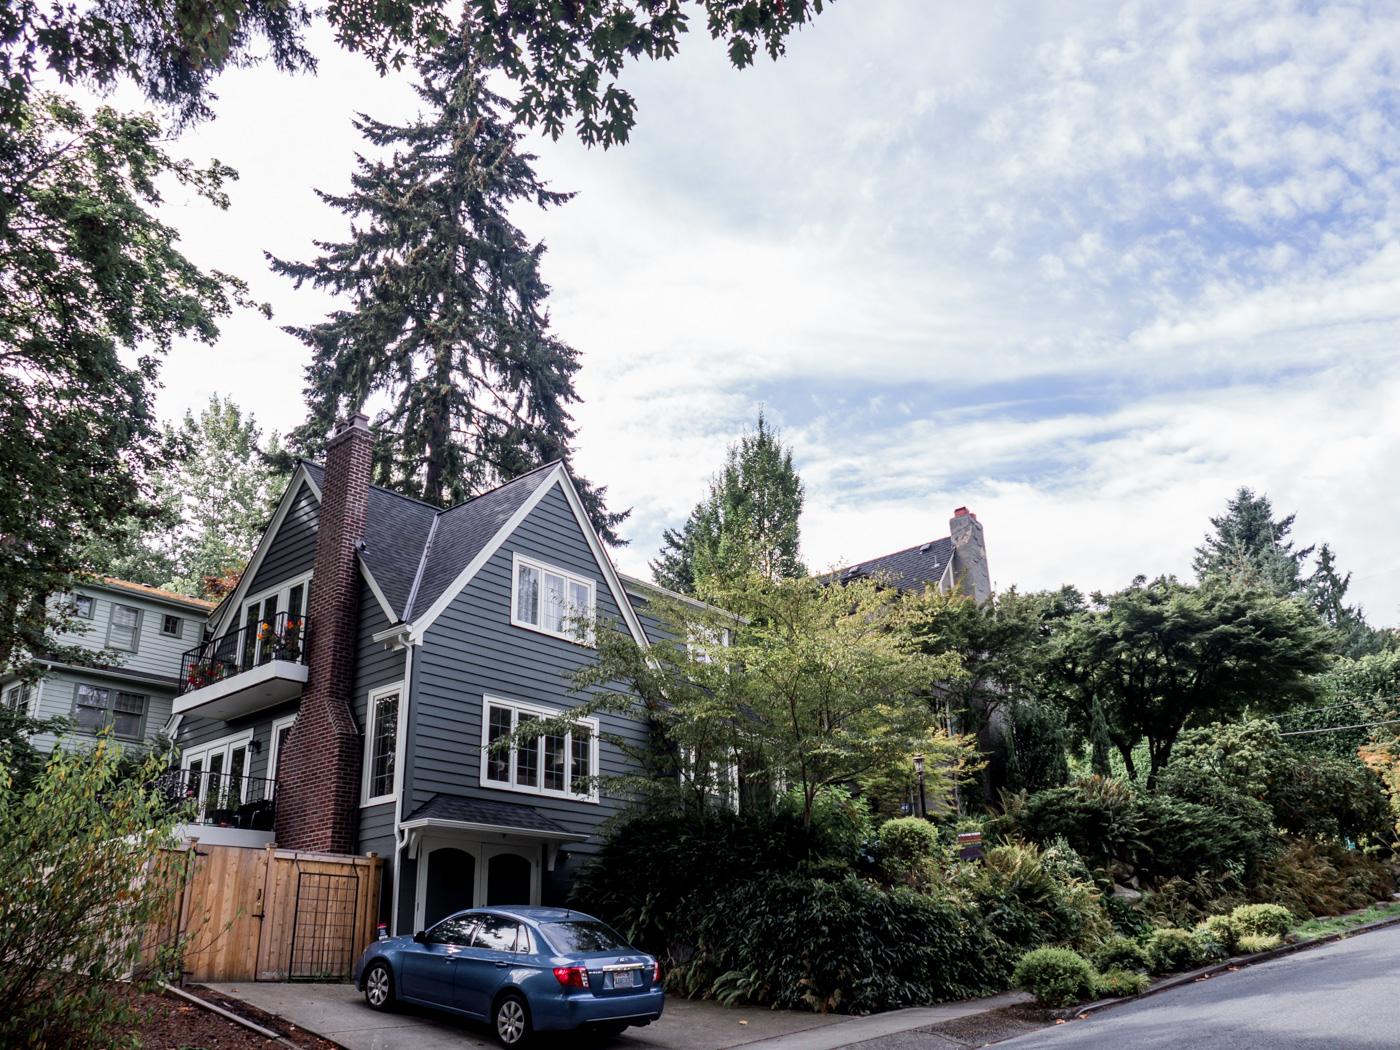 beautiful homes in the Washington Park area of Seattle